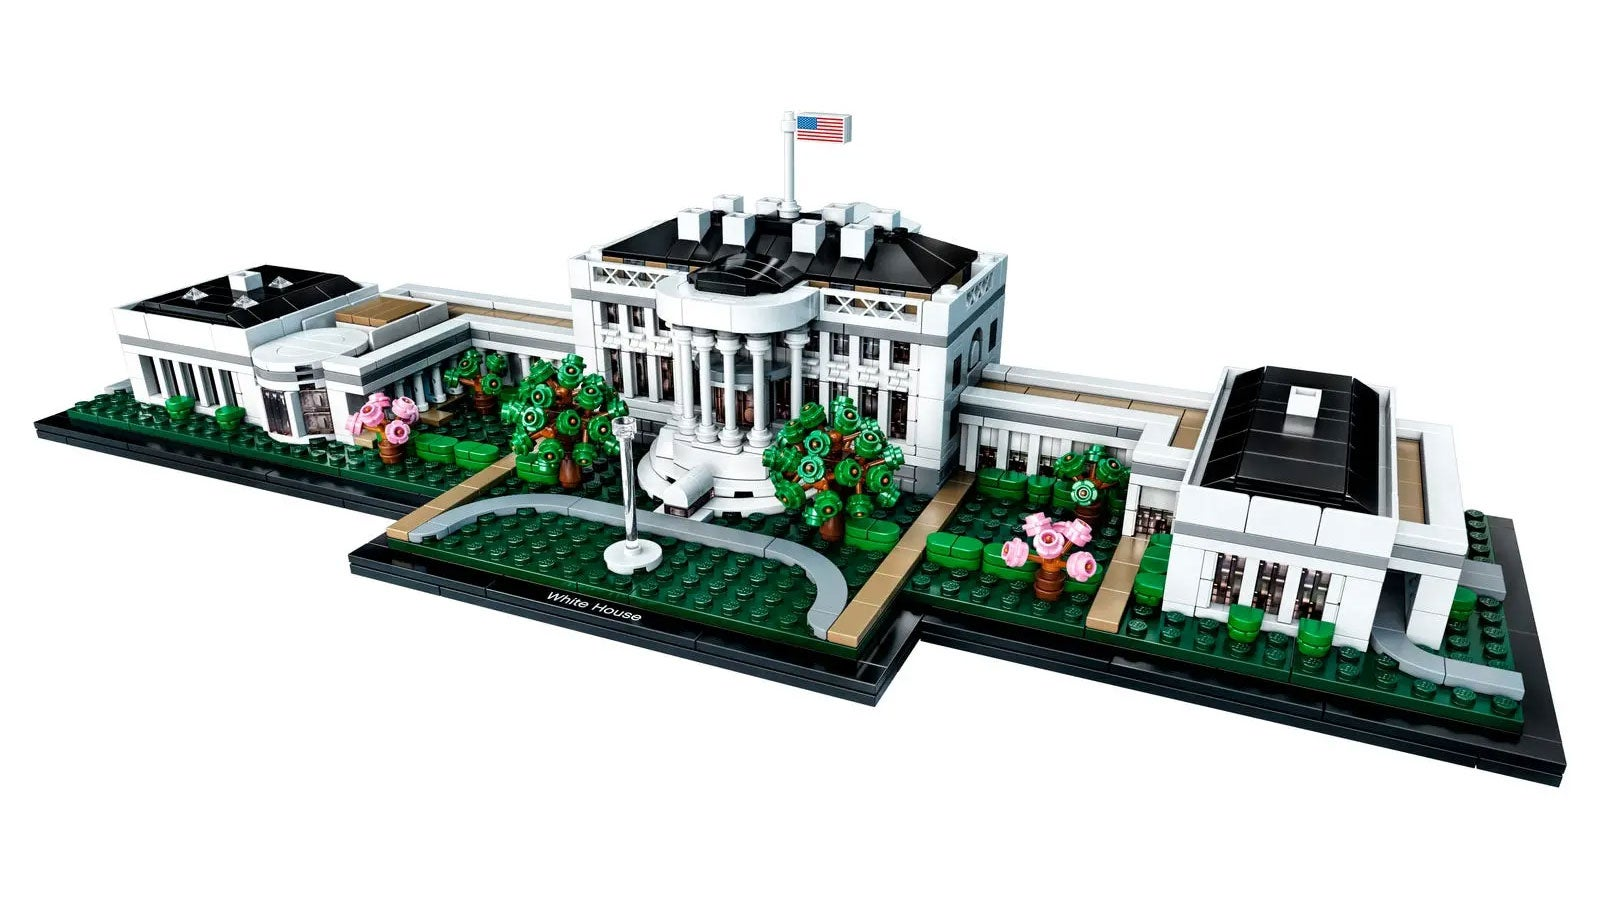 LEGO Asks Stores To Stop Advertising Police, White House Sets